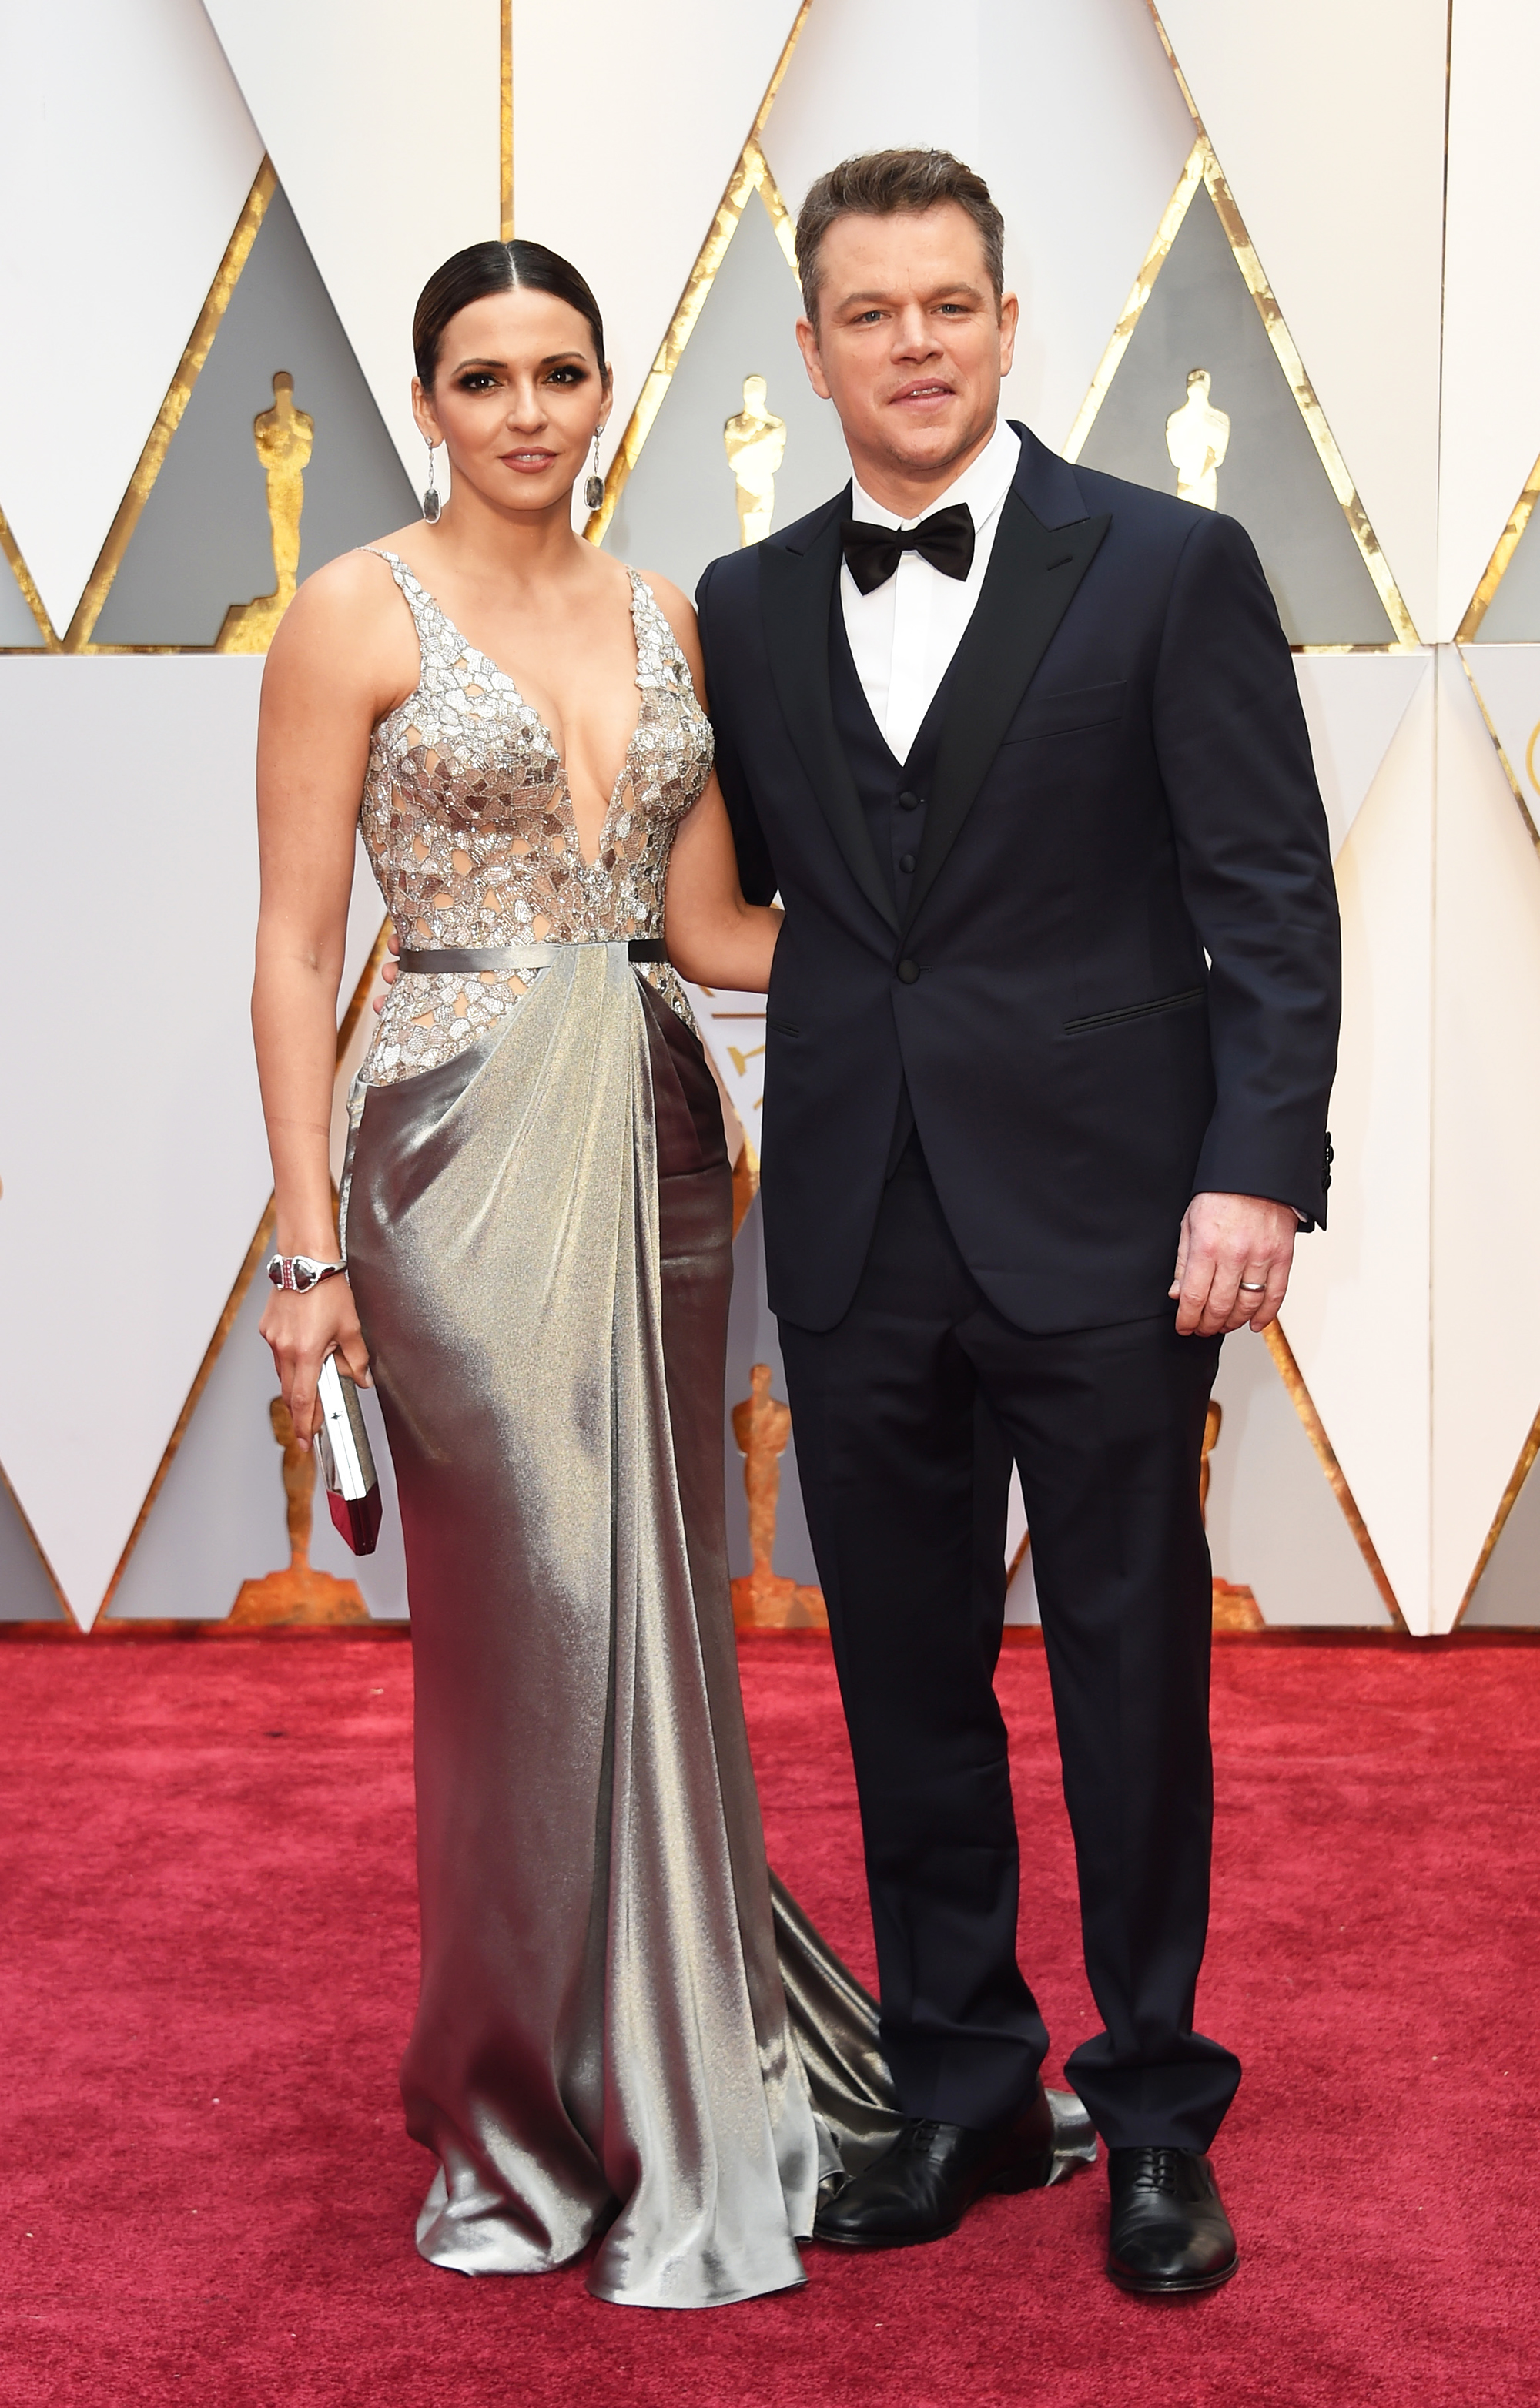 Luciana Barroso and Matt Damon on the red carpet for the 89th Oscars, on Feb. 26, 2017 in Hollywood, Calif.